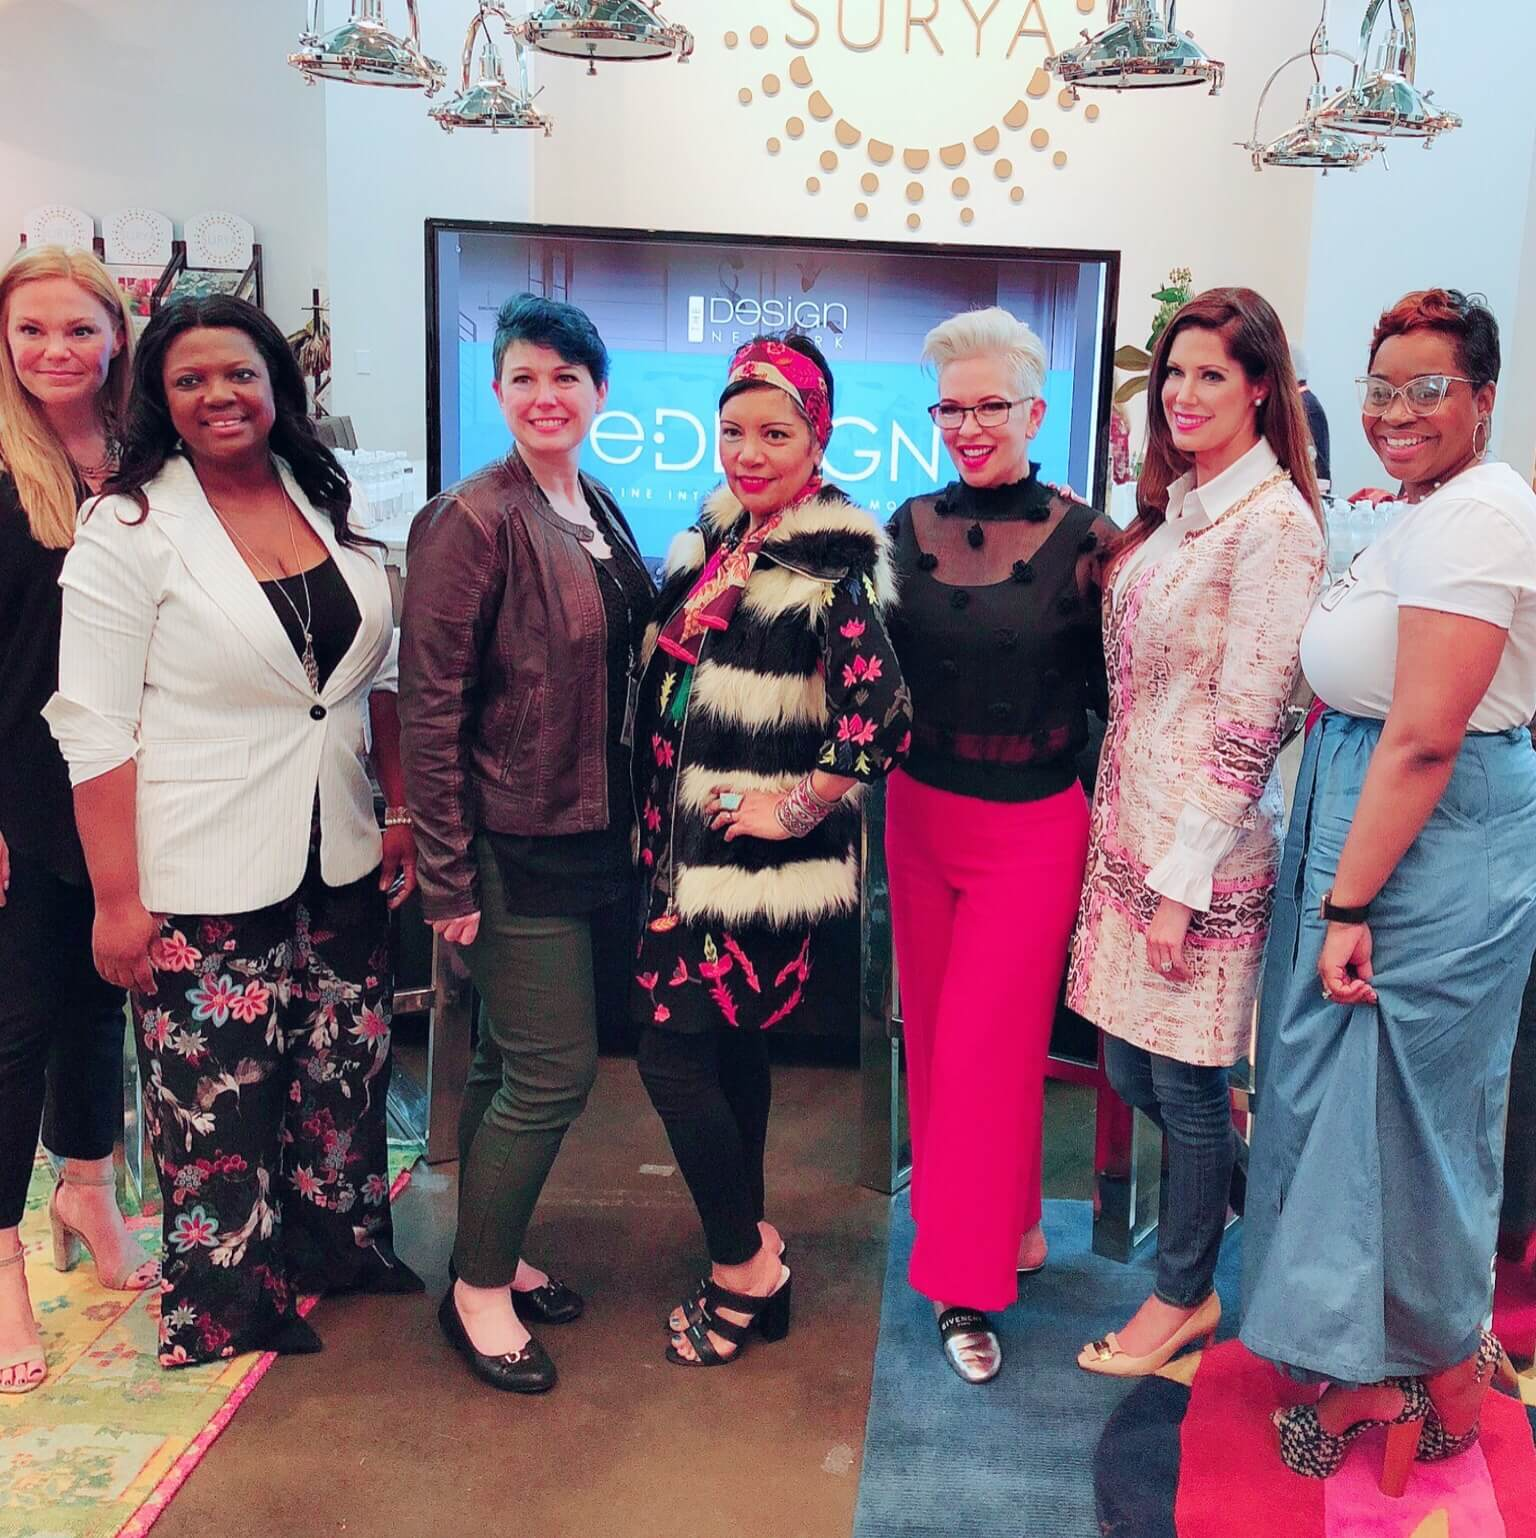 (left to right): Sandra Funk, Veronica Solomon, Dixie Willard, Rachel Moriarty, Kelli Ellis, Shayla Copas, Alberthe Buabeng